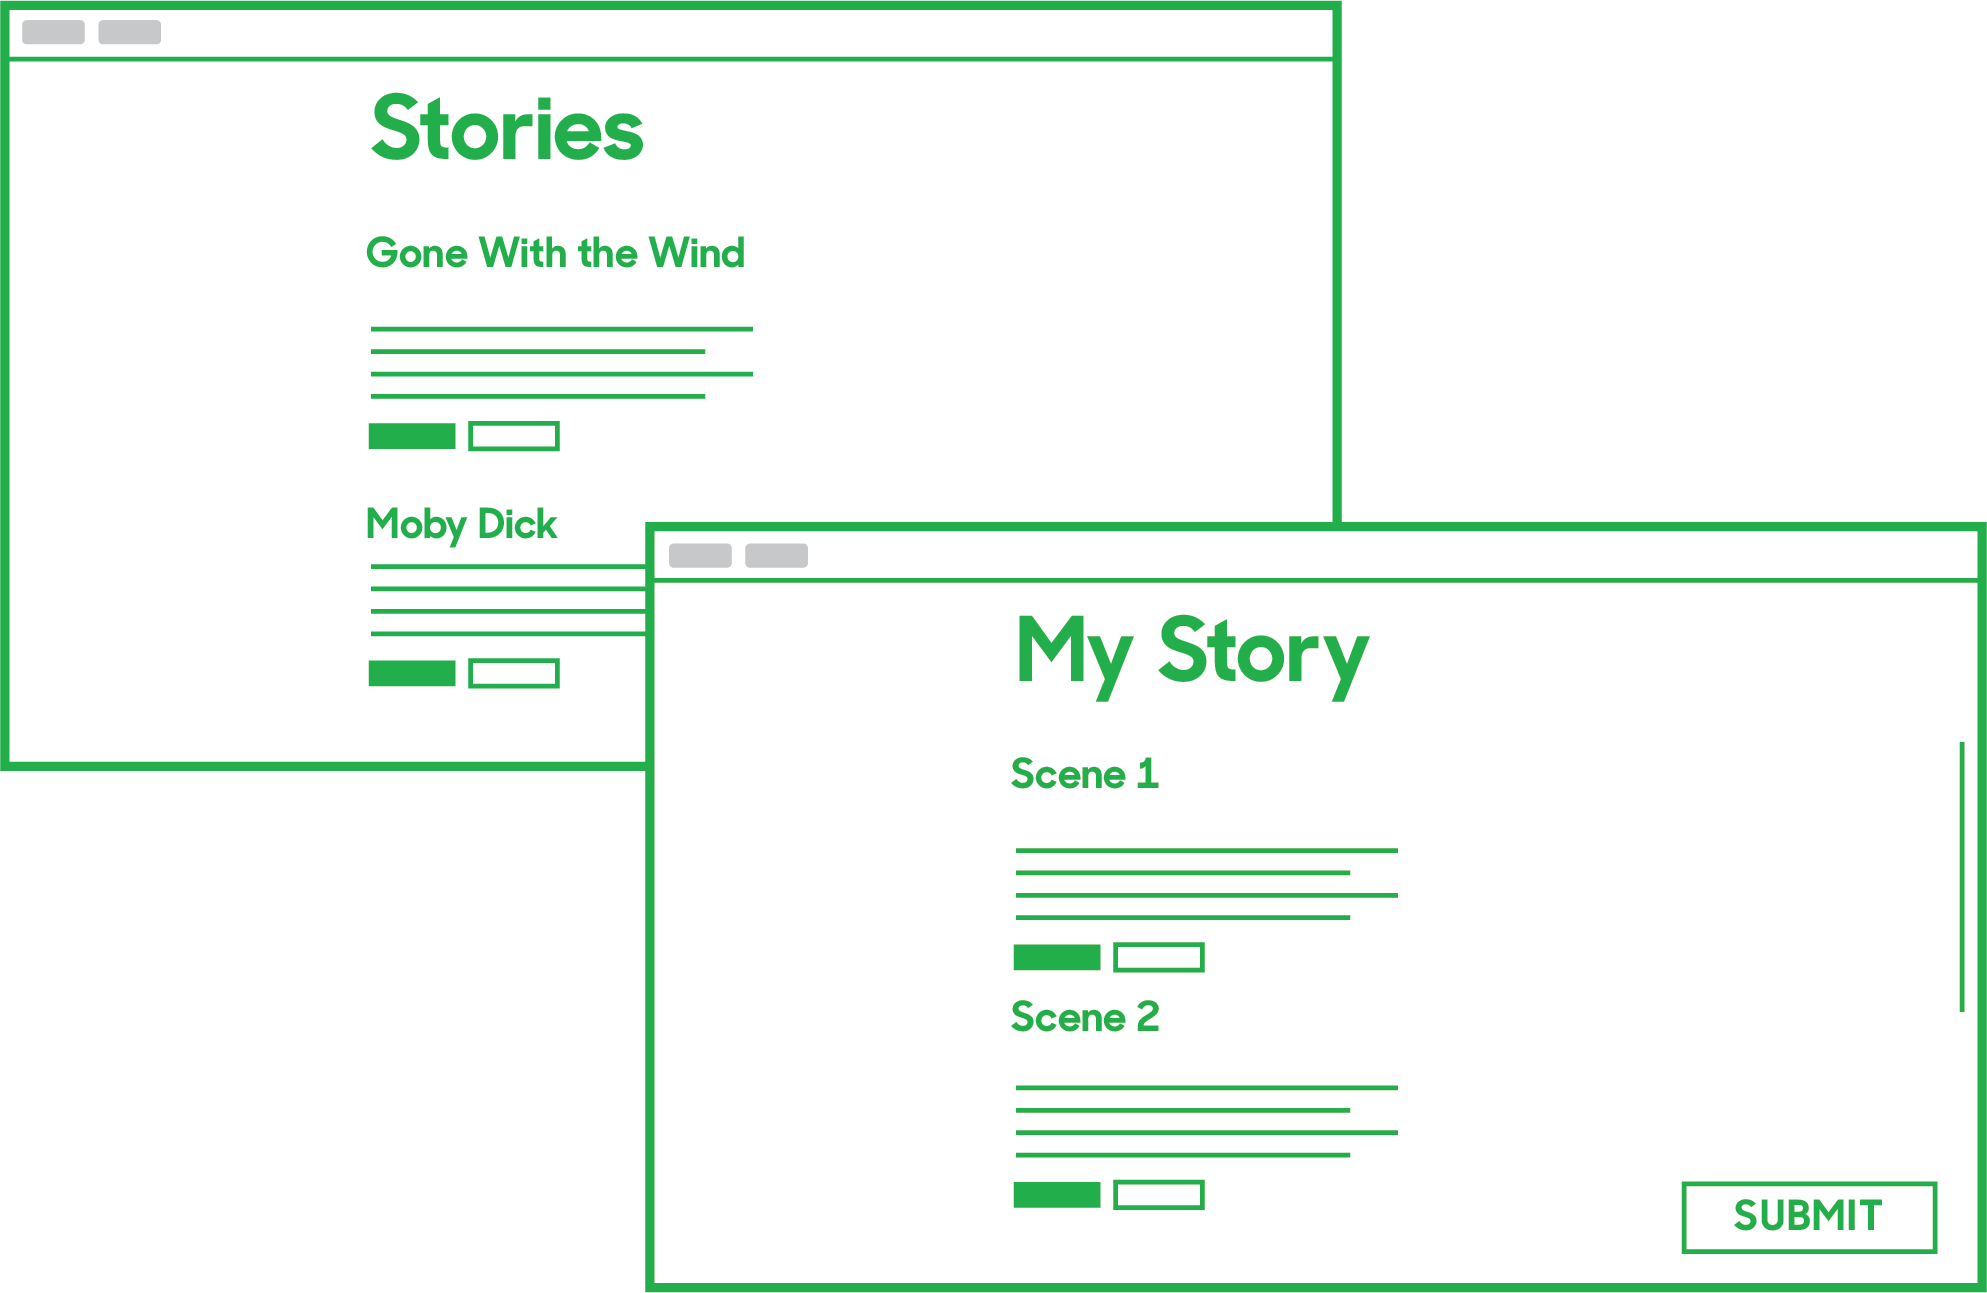 play free online stories and create your own with the story template